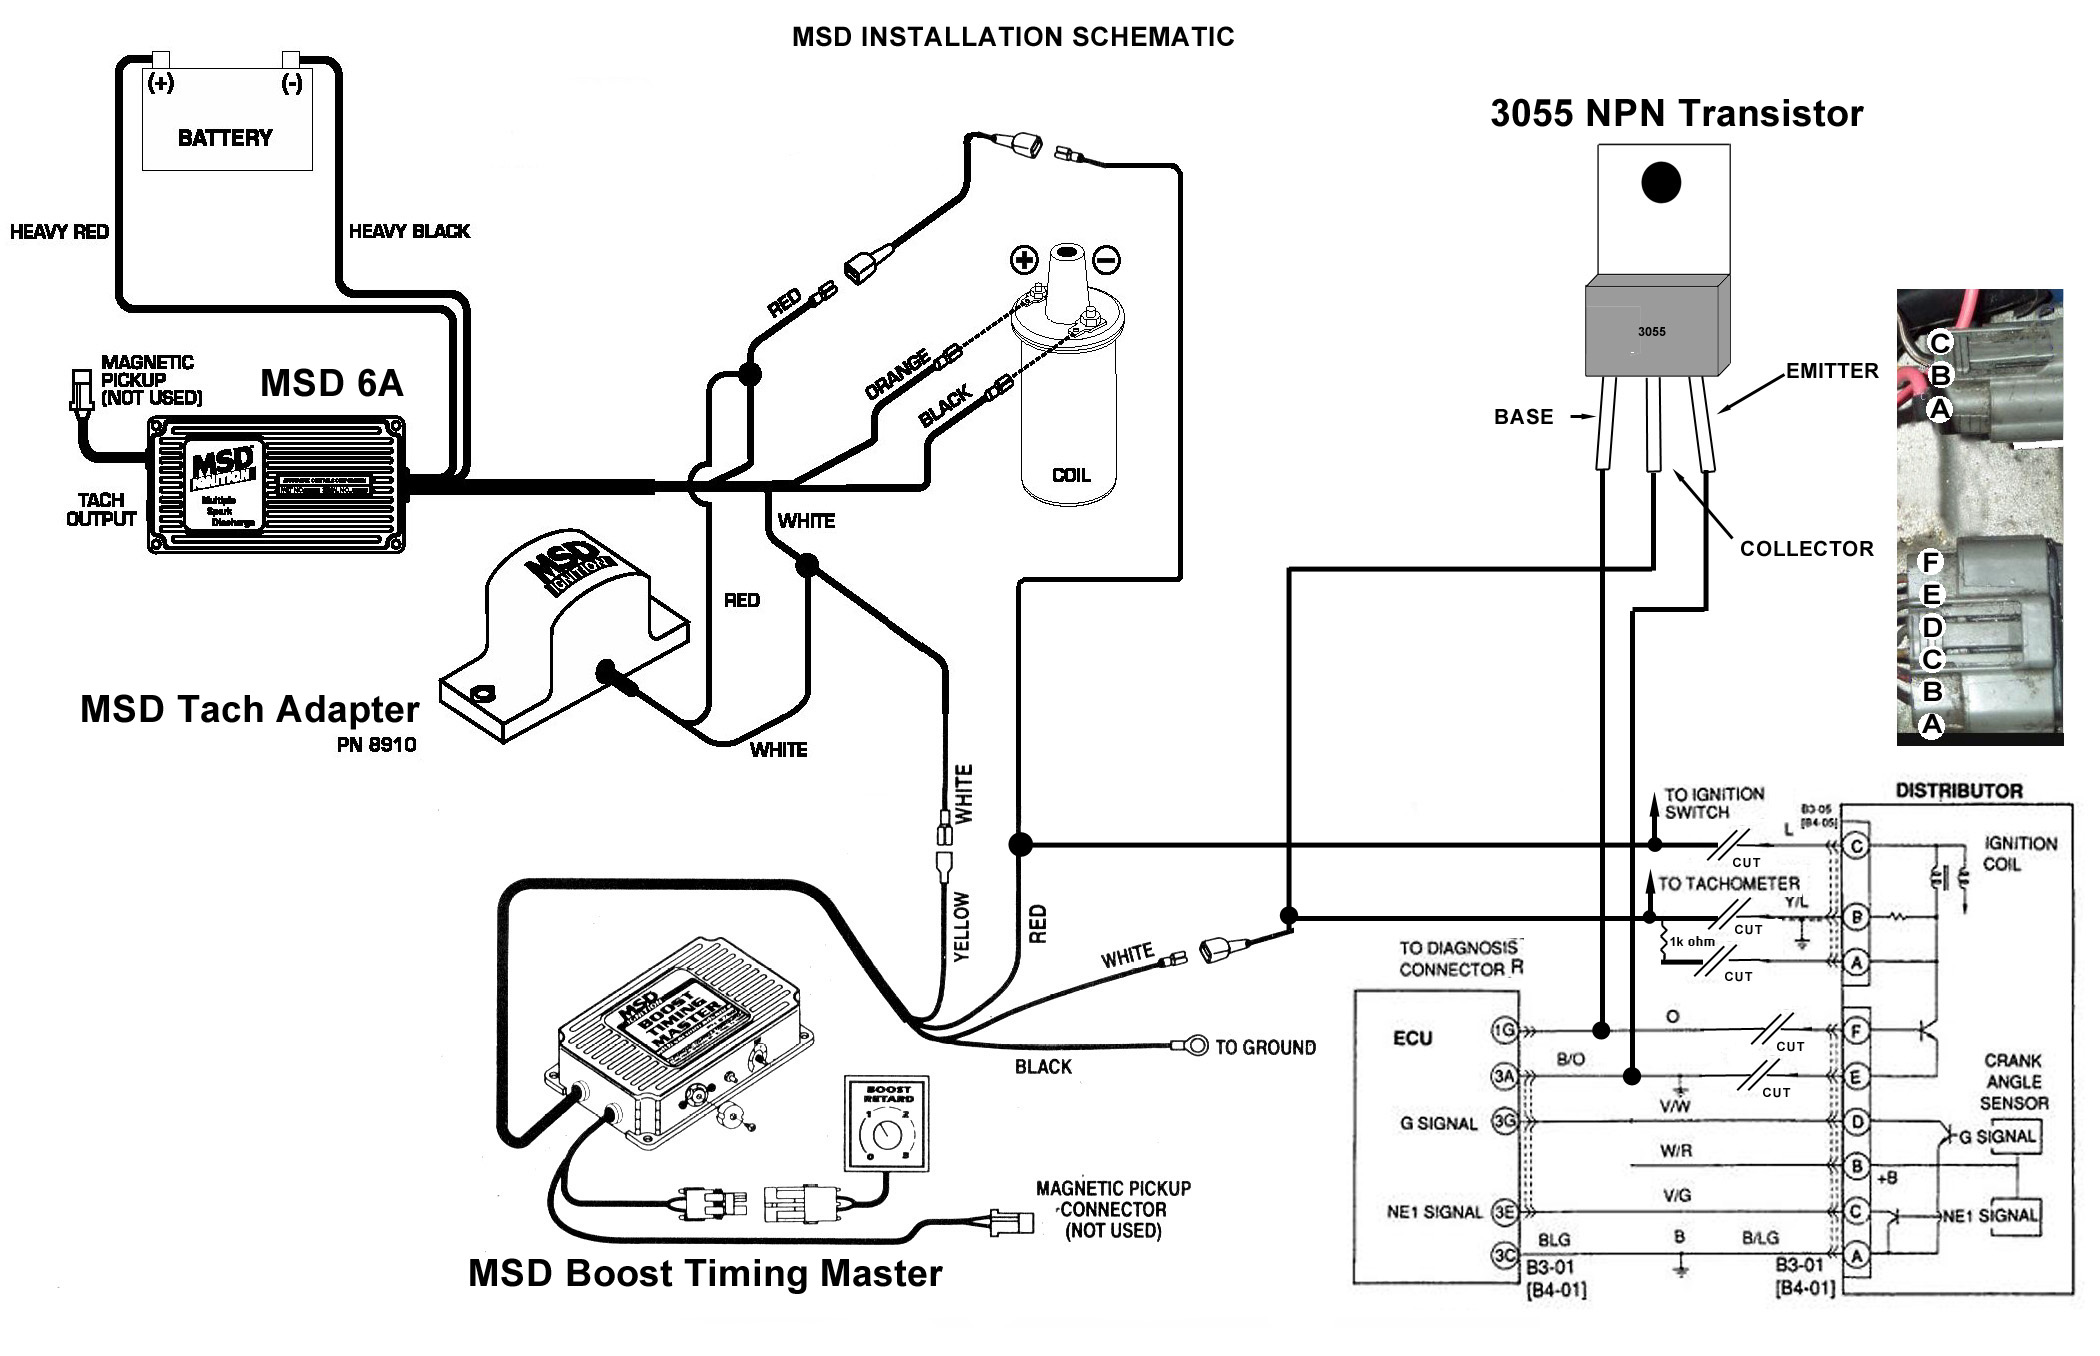 msd_complete can we use the msd boost timing master for our car? mazda mx 6 forum msd boost timing master wiring diagram at bakdesigns.co